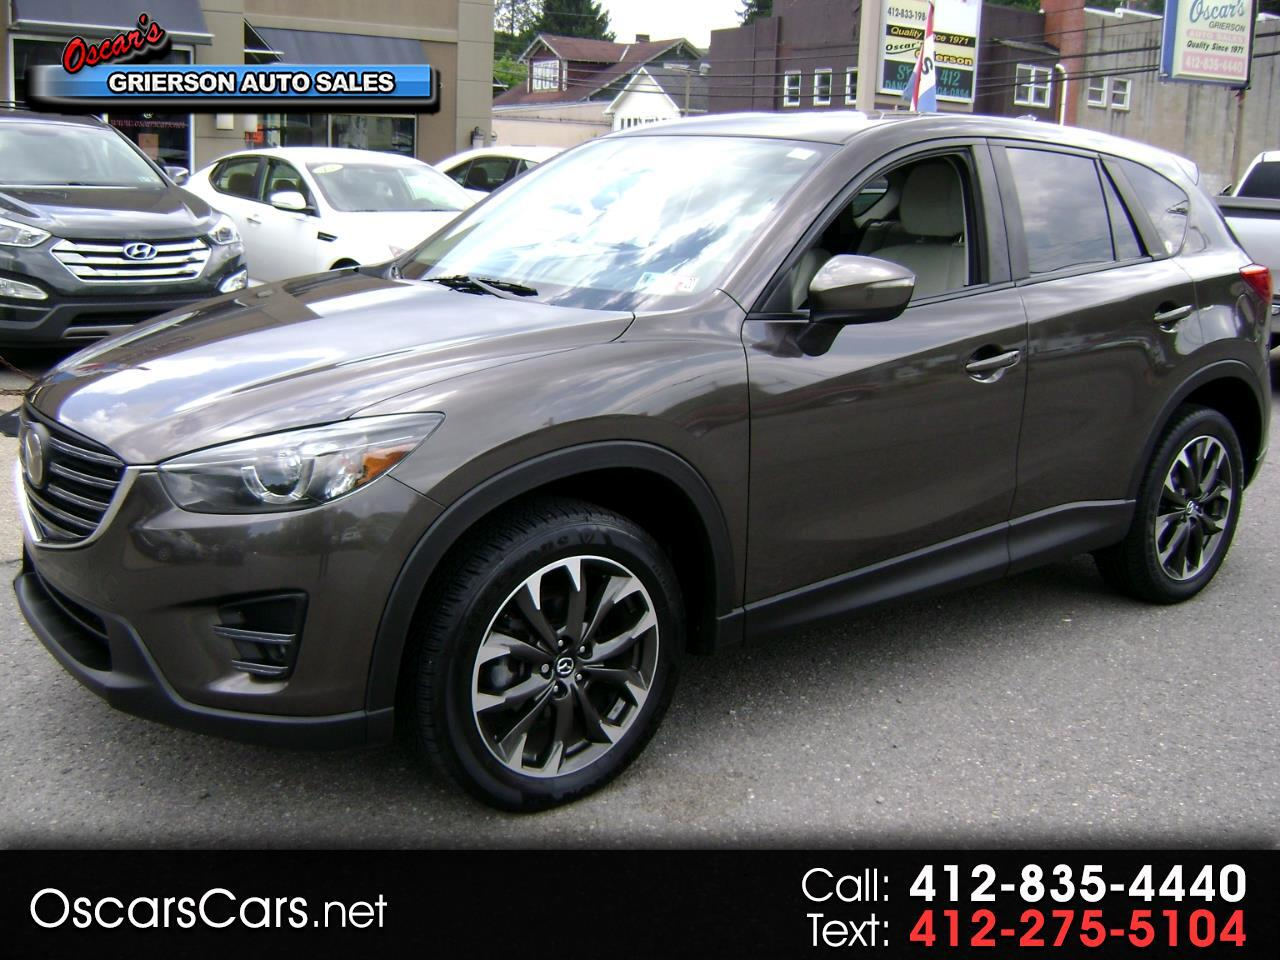 2016 Mazda CX-5 AWD 4dr Auto Grand Touring